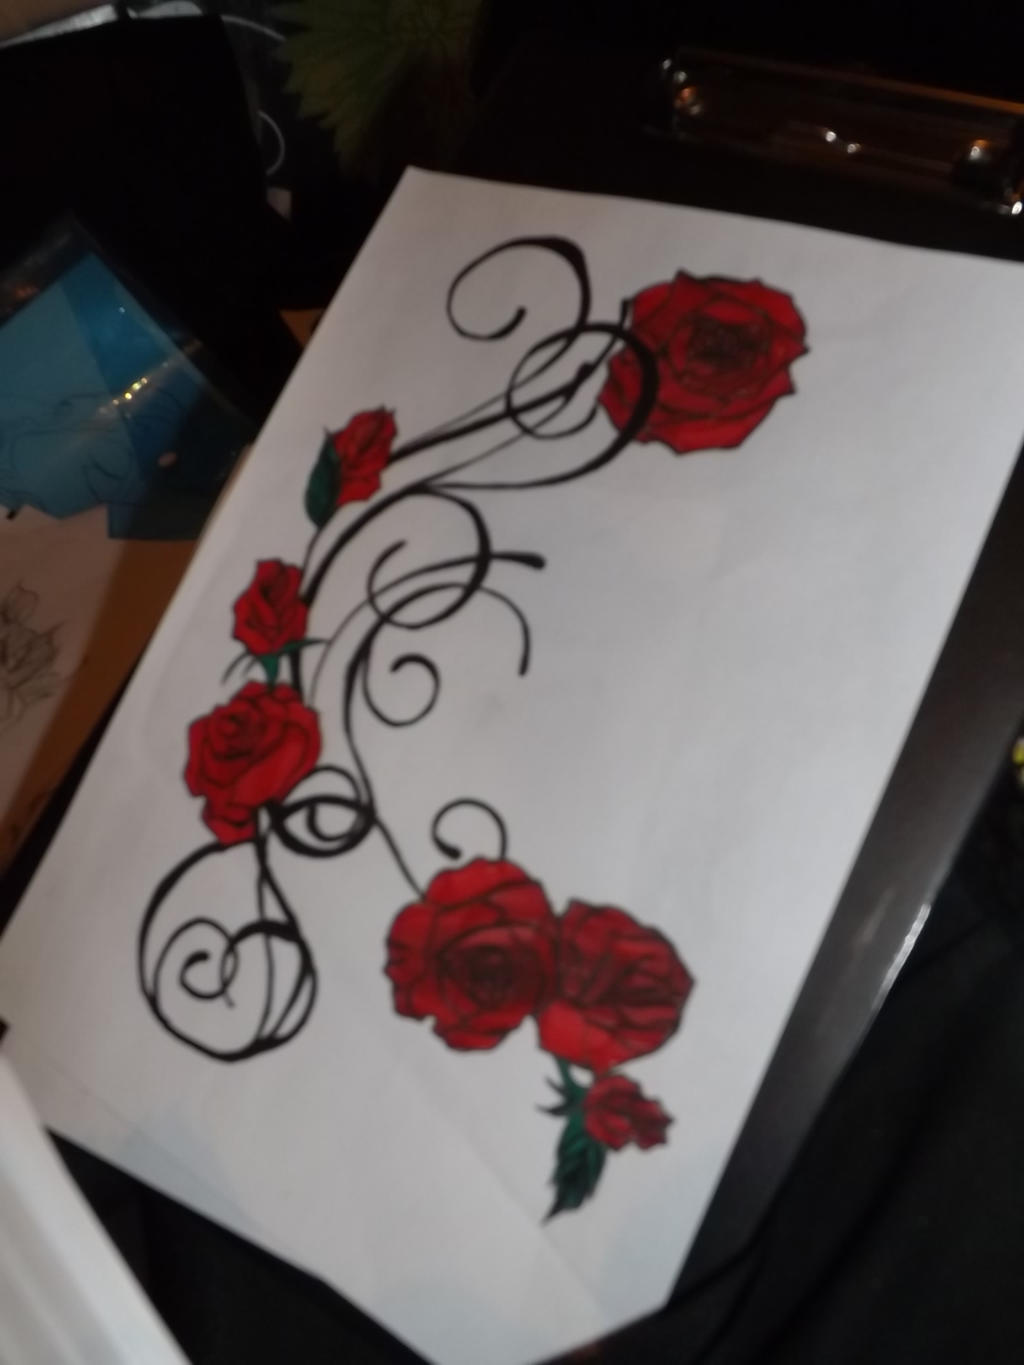 Rose hip tattoo by saminaali on deviantart rose hip tattoo by saminaali rose hip tattoo by saminaali urmus Image collections